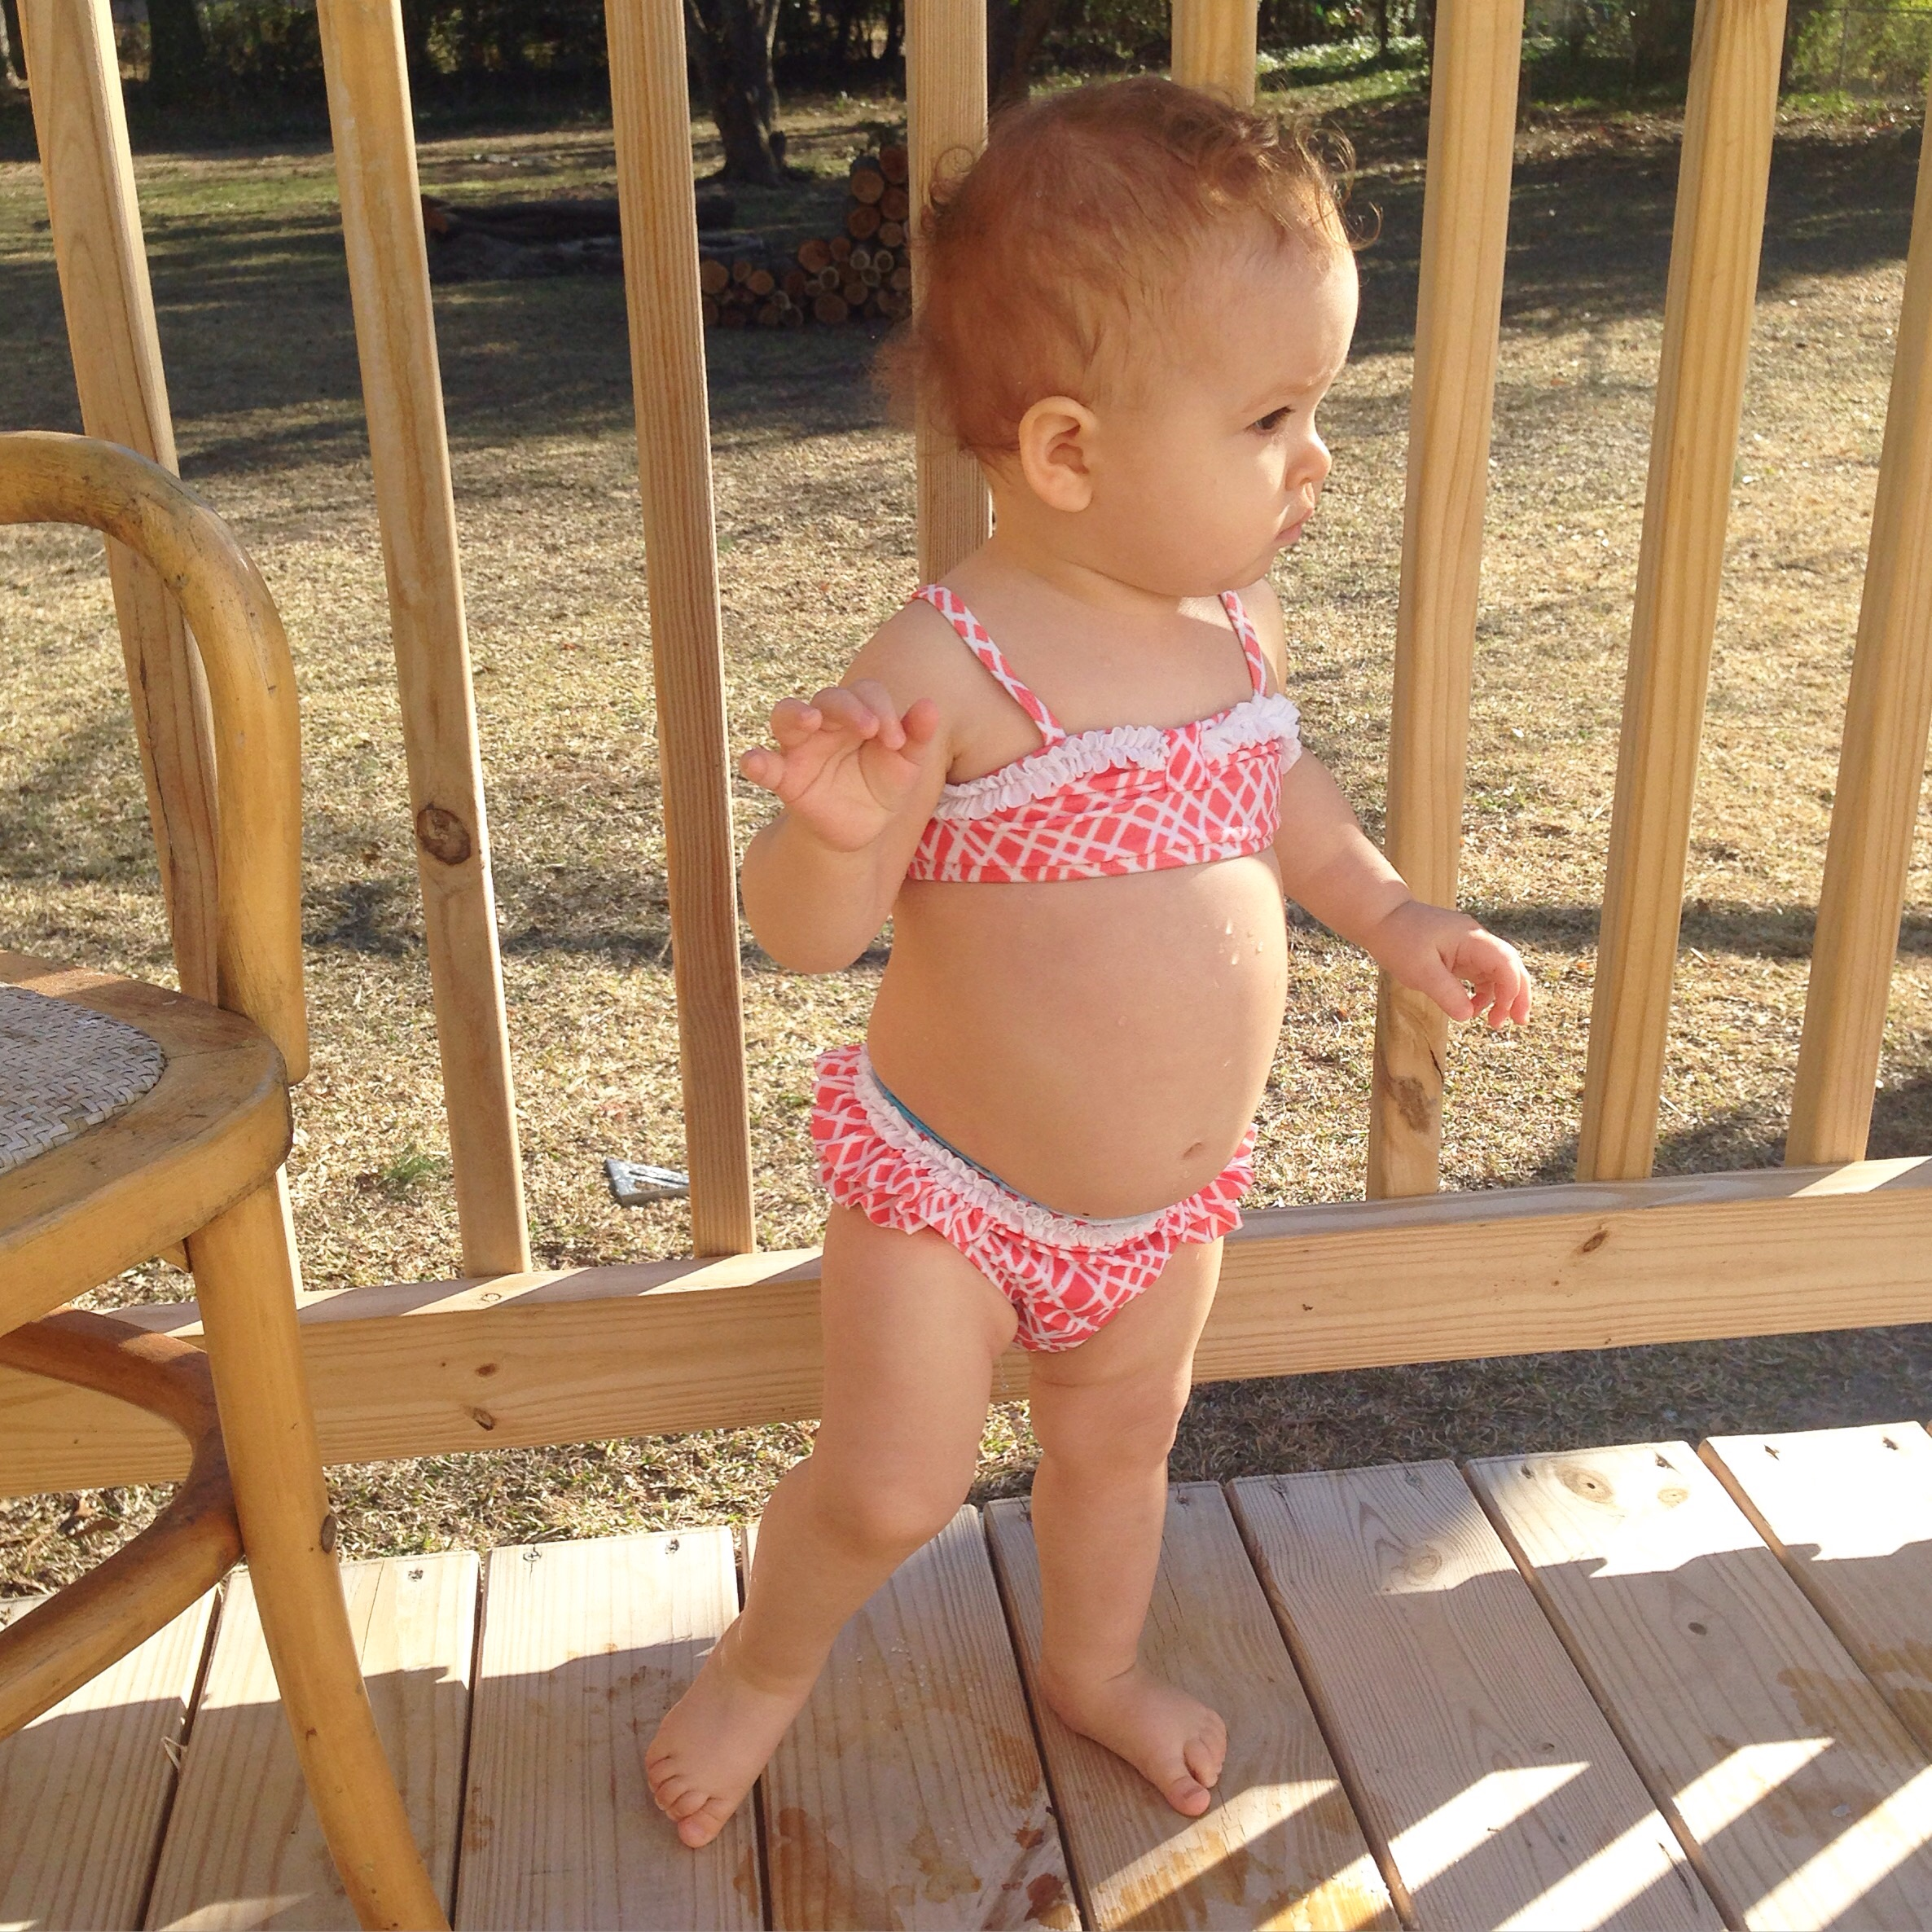 Never wants to change out of her bikini.